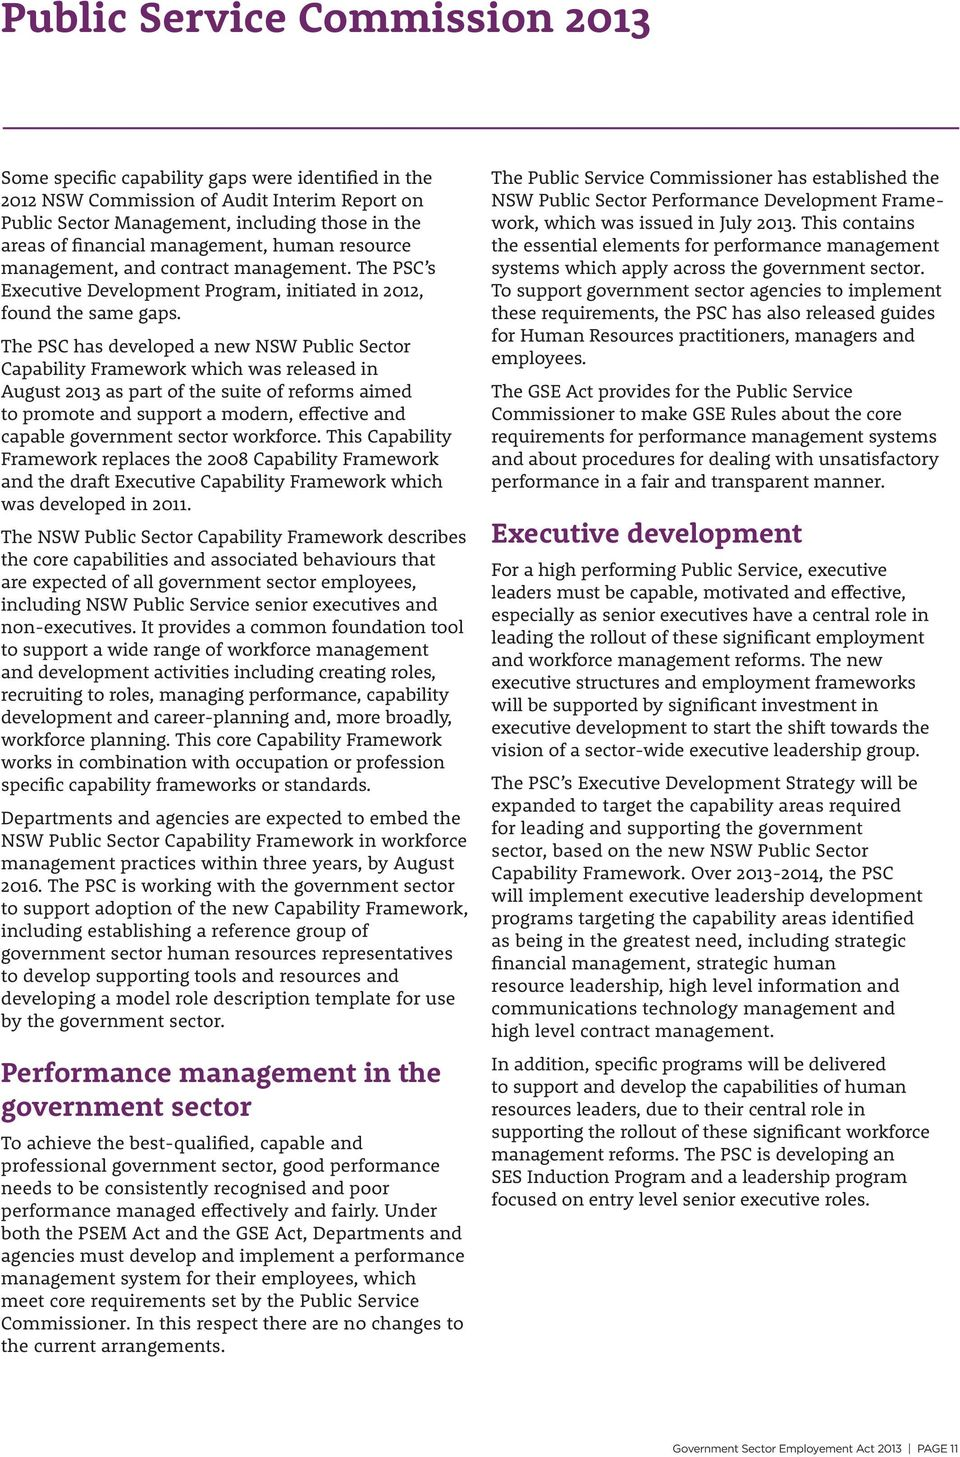 The PSC has developed a new NSW Public Sector Capability Framework which was released in August 2013 as part of the suite of reforms aimed to promote and support a modern, effective and capable